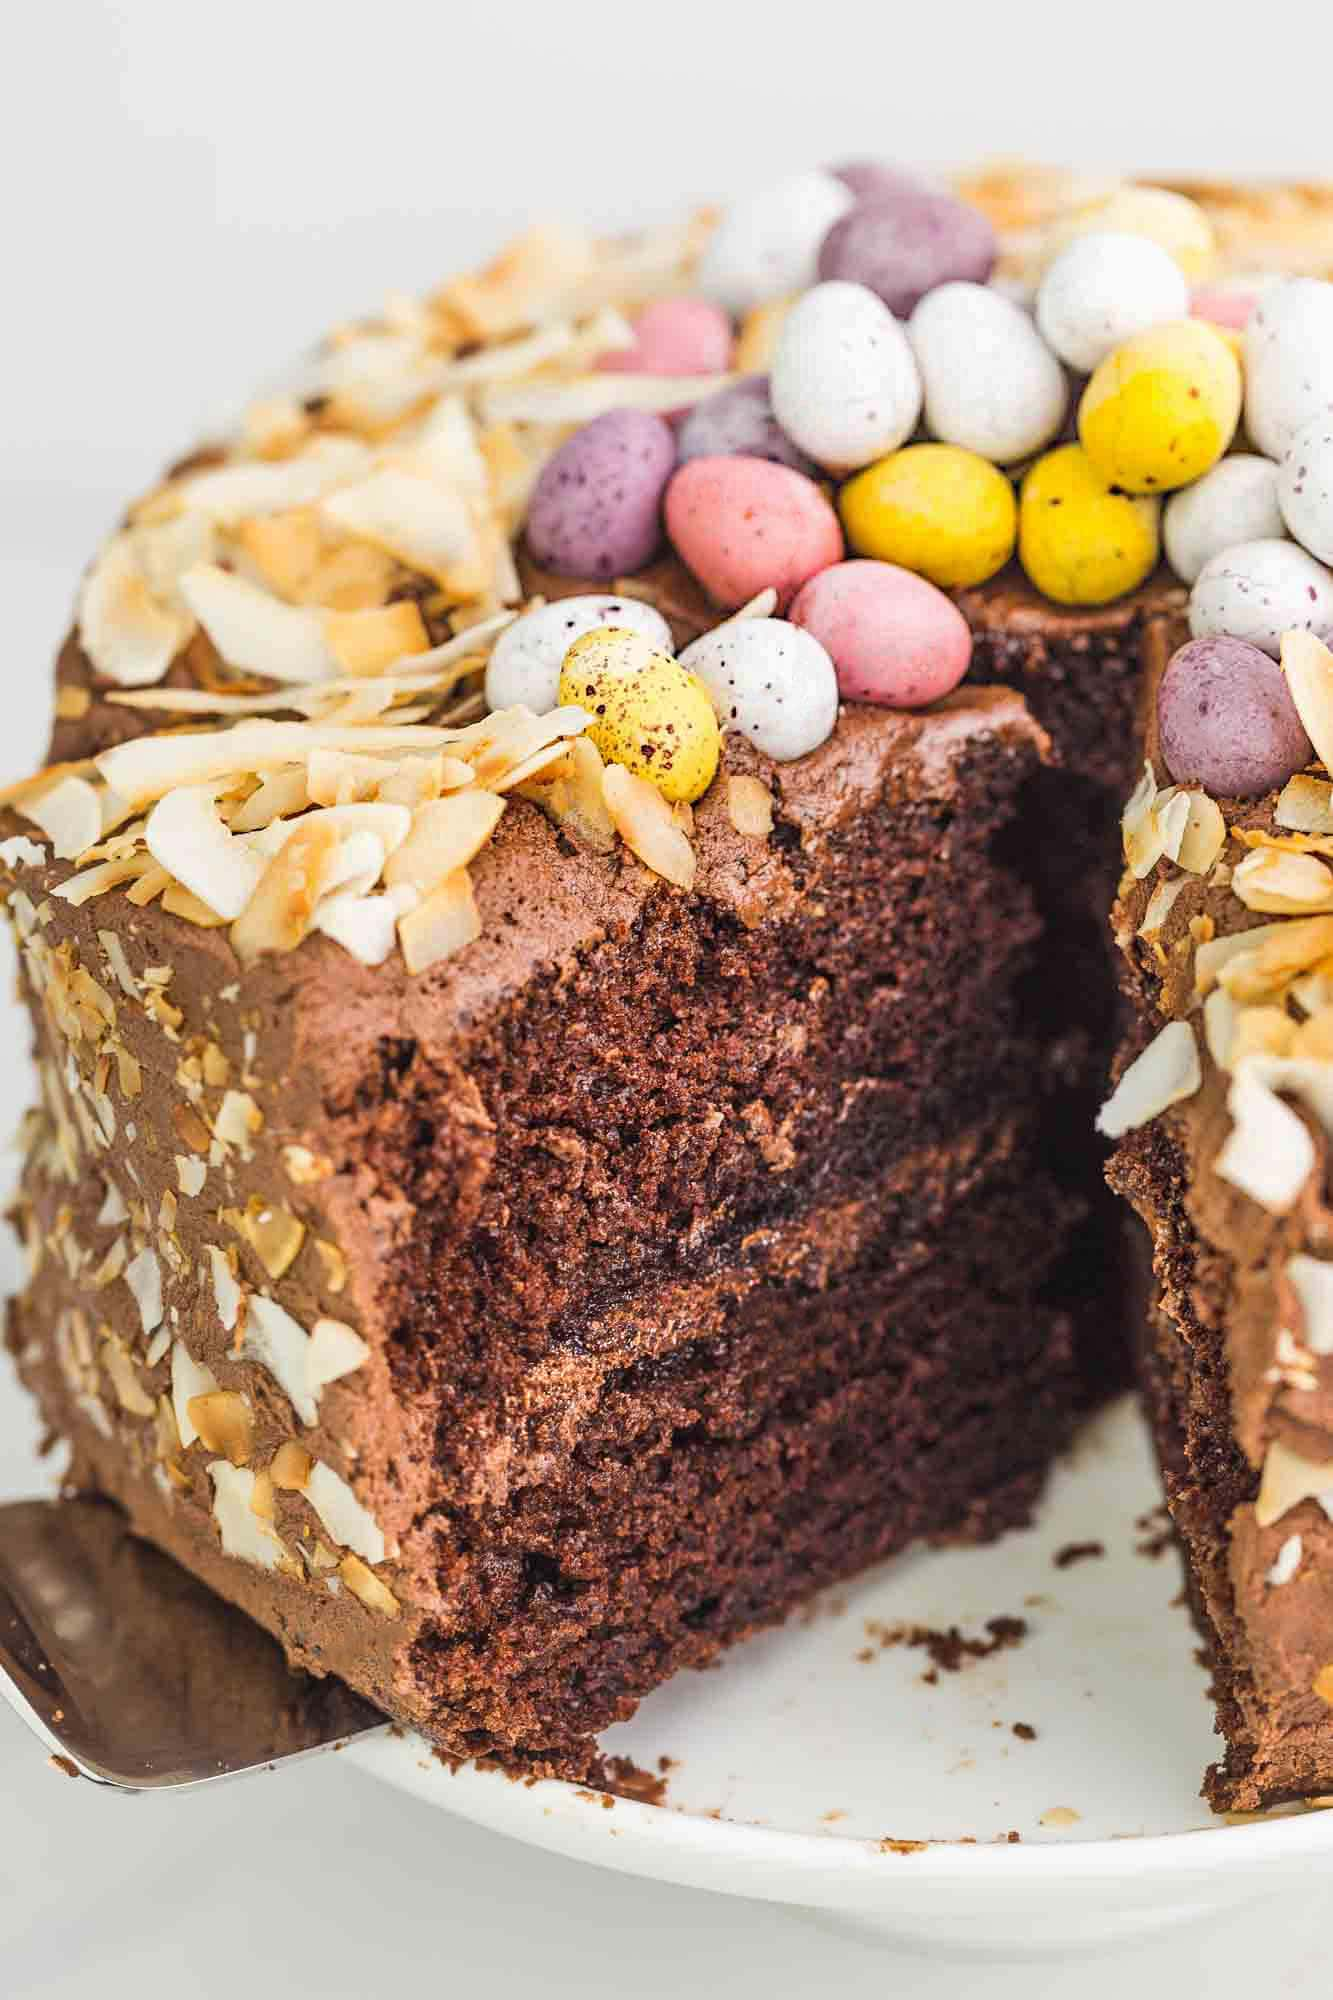 Slicing the chocolate easter cake